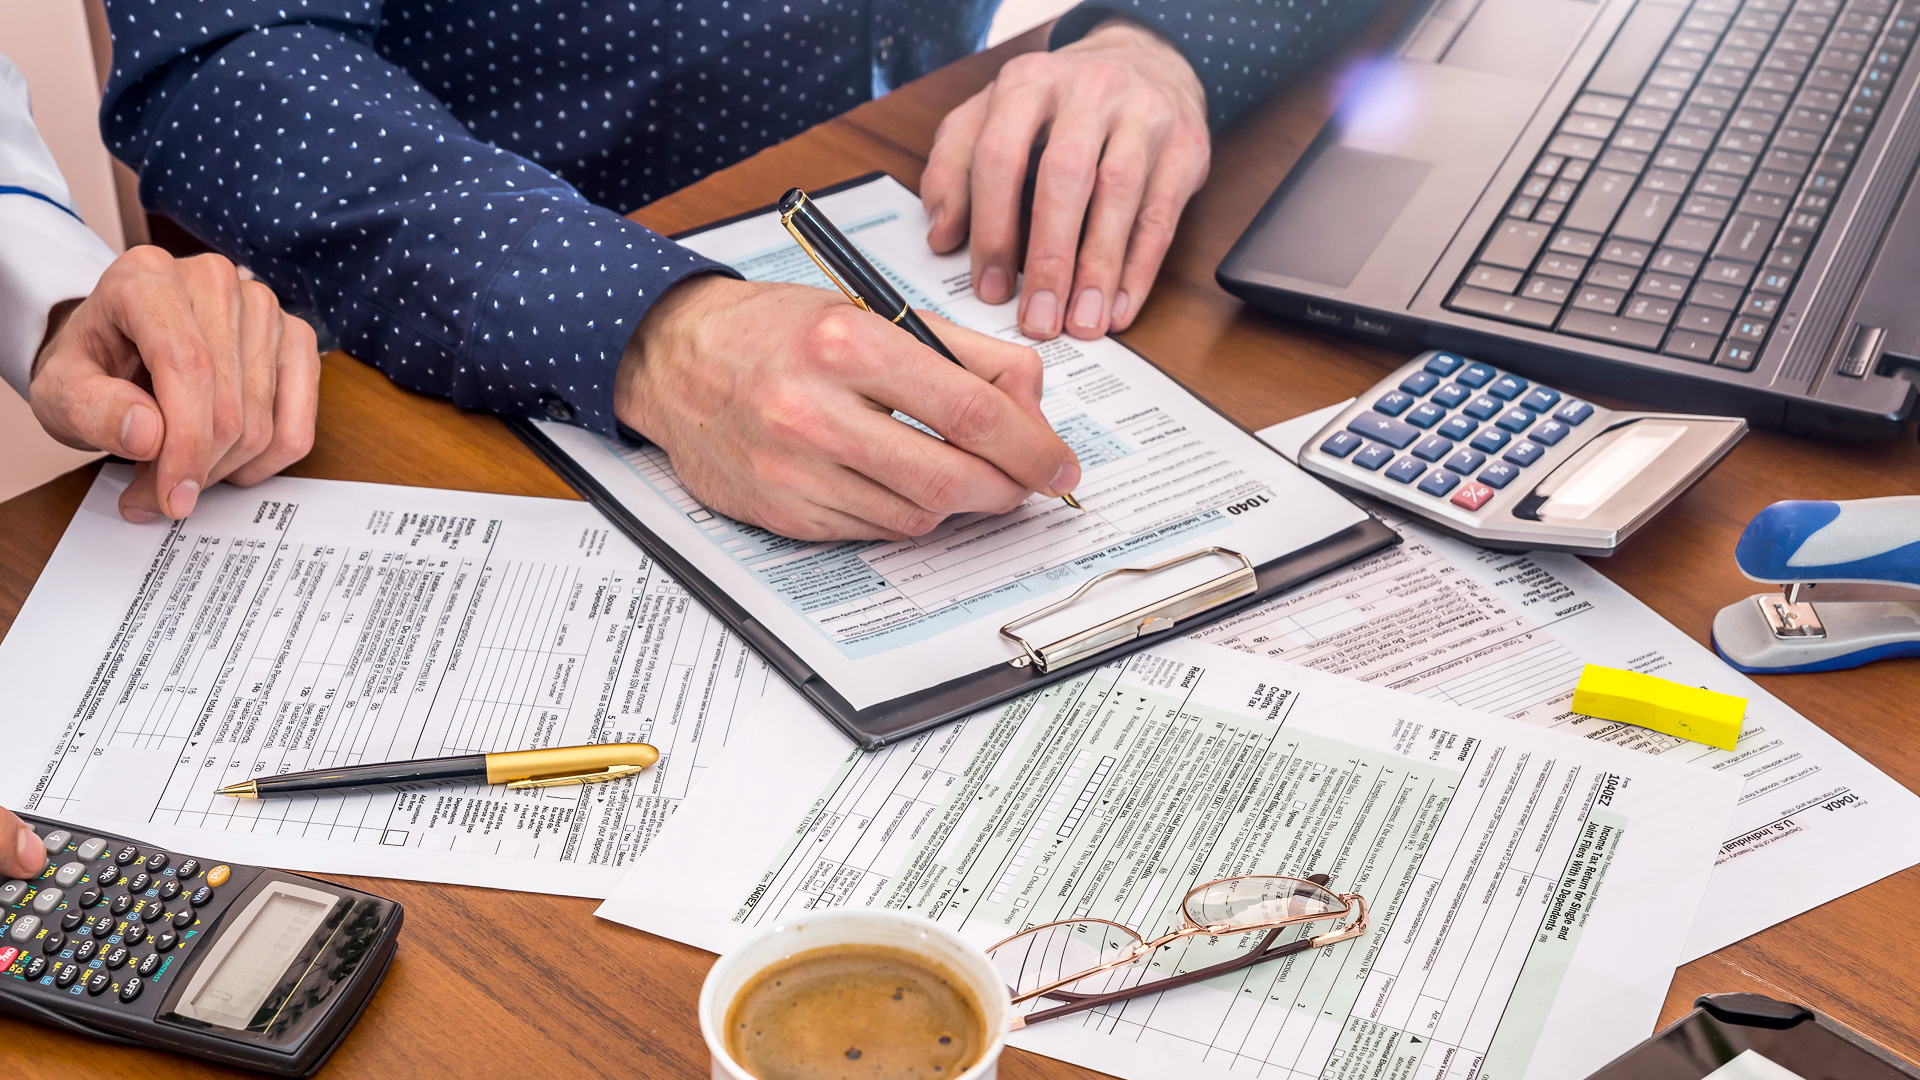 What Are The Important Things to Know About Sales Tax?